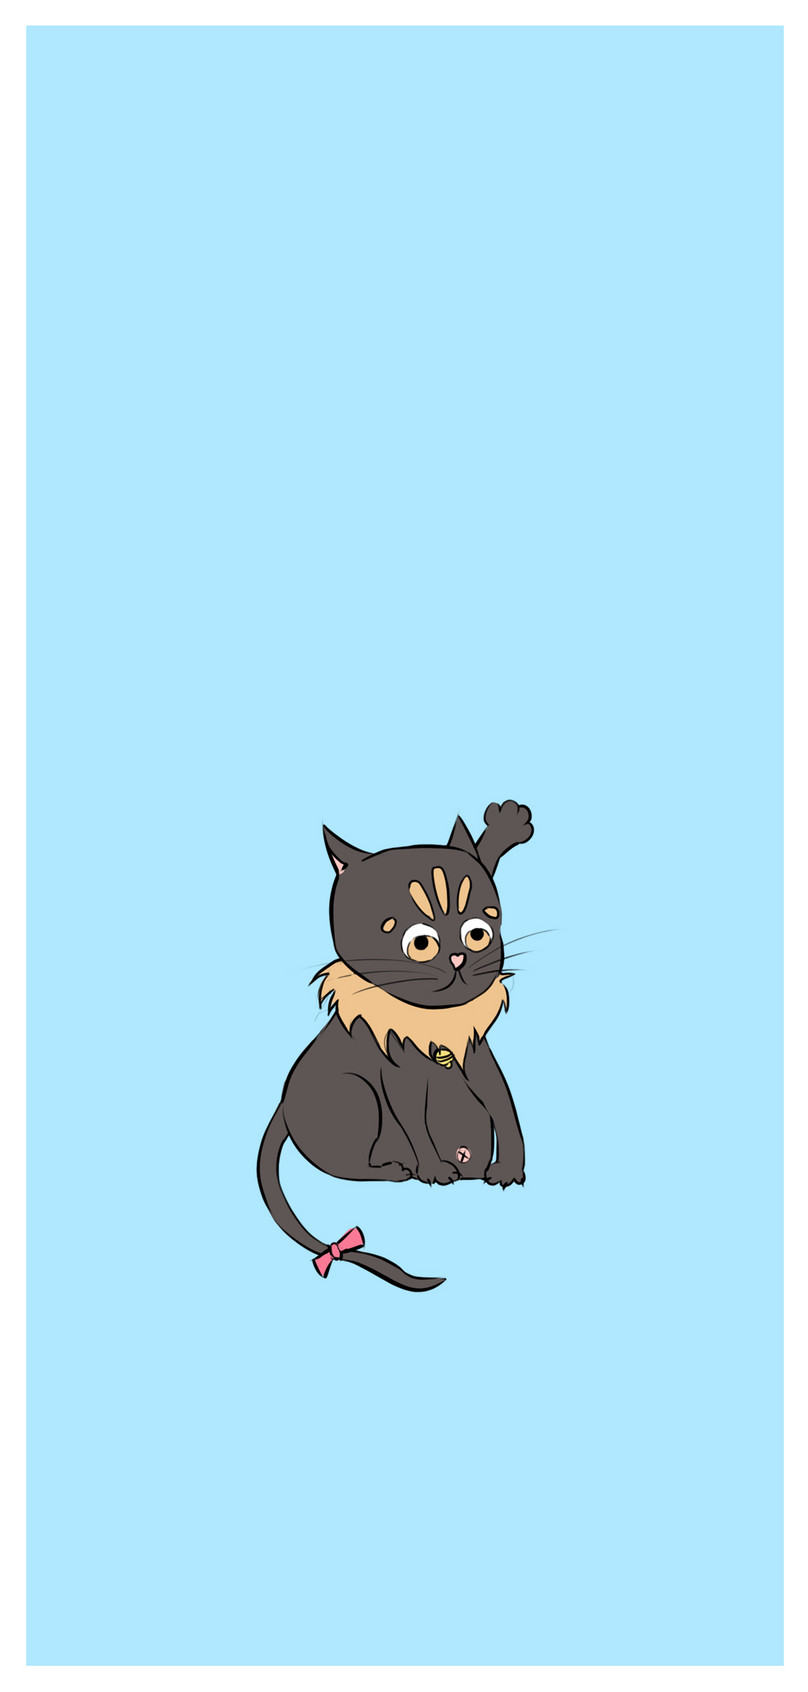 Cute Cat Mobile Phone Wallpaper Backgrounds Images Free